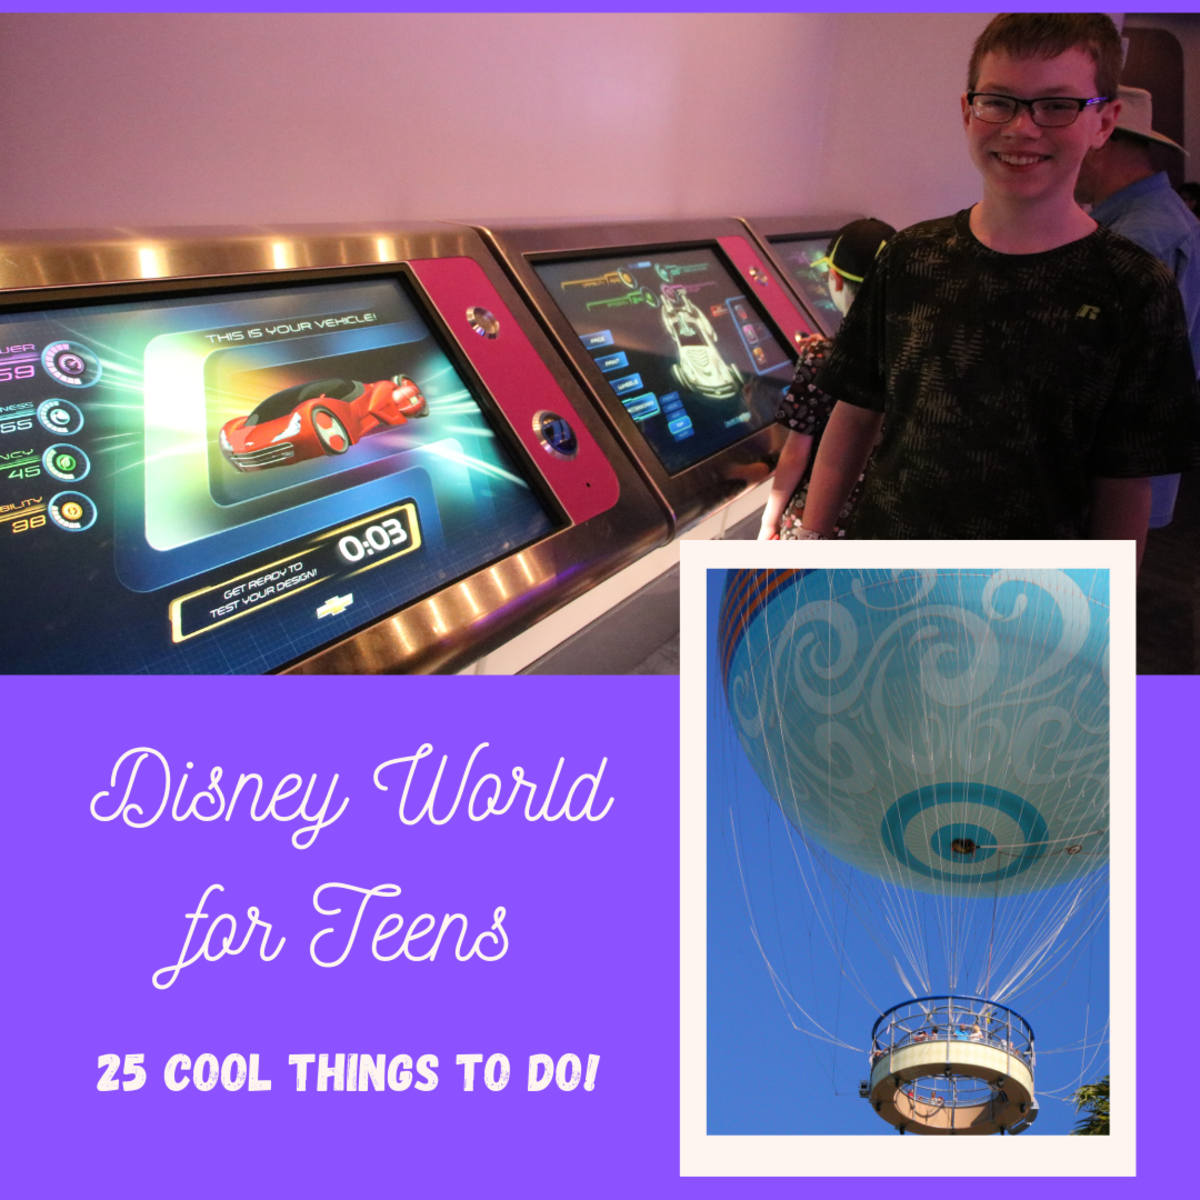 Disney World is not just for little kids - there are many fun activities for teenagers throughout the theme parks and resort hotels.